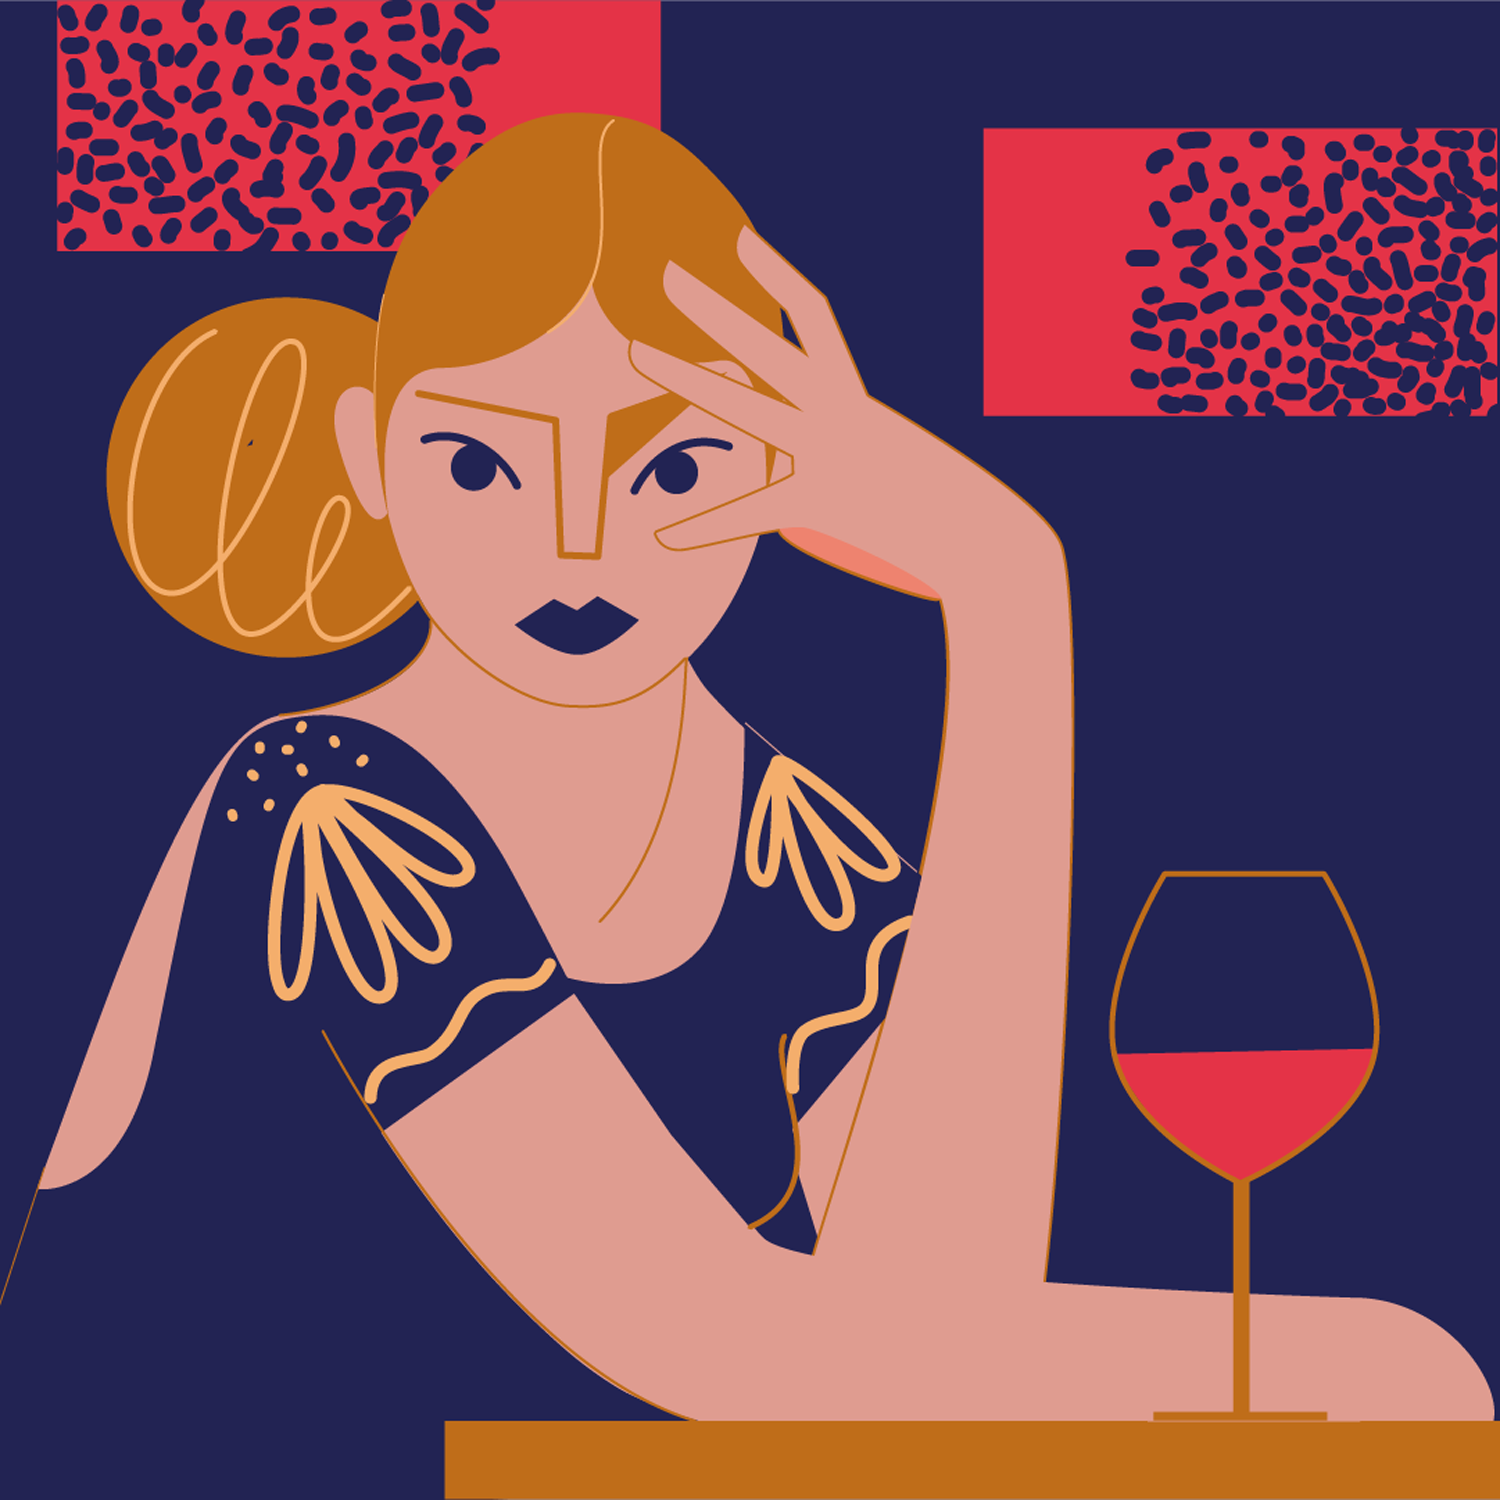 Illustration of a woman sitting in a bar with a glass of wine